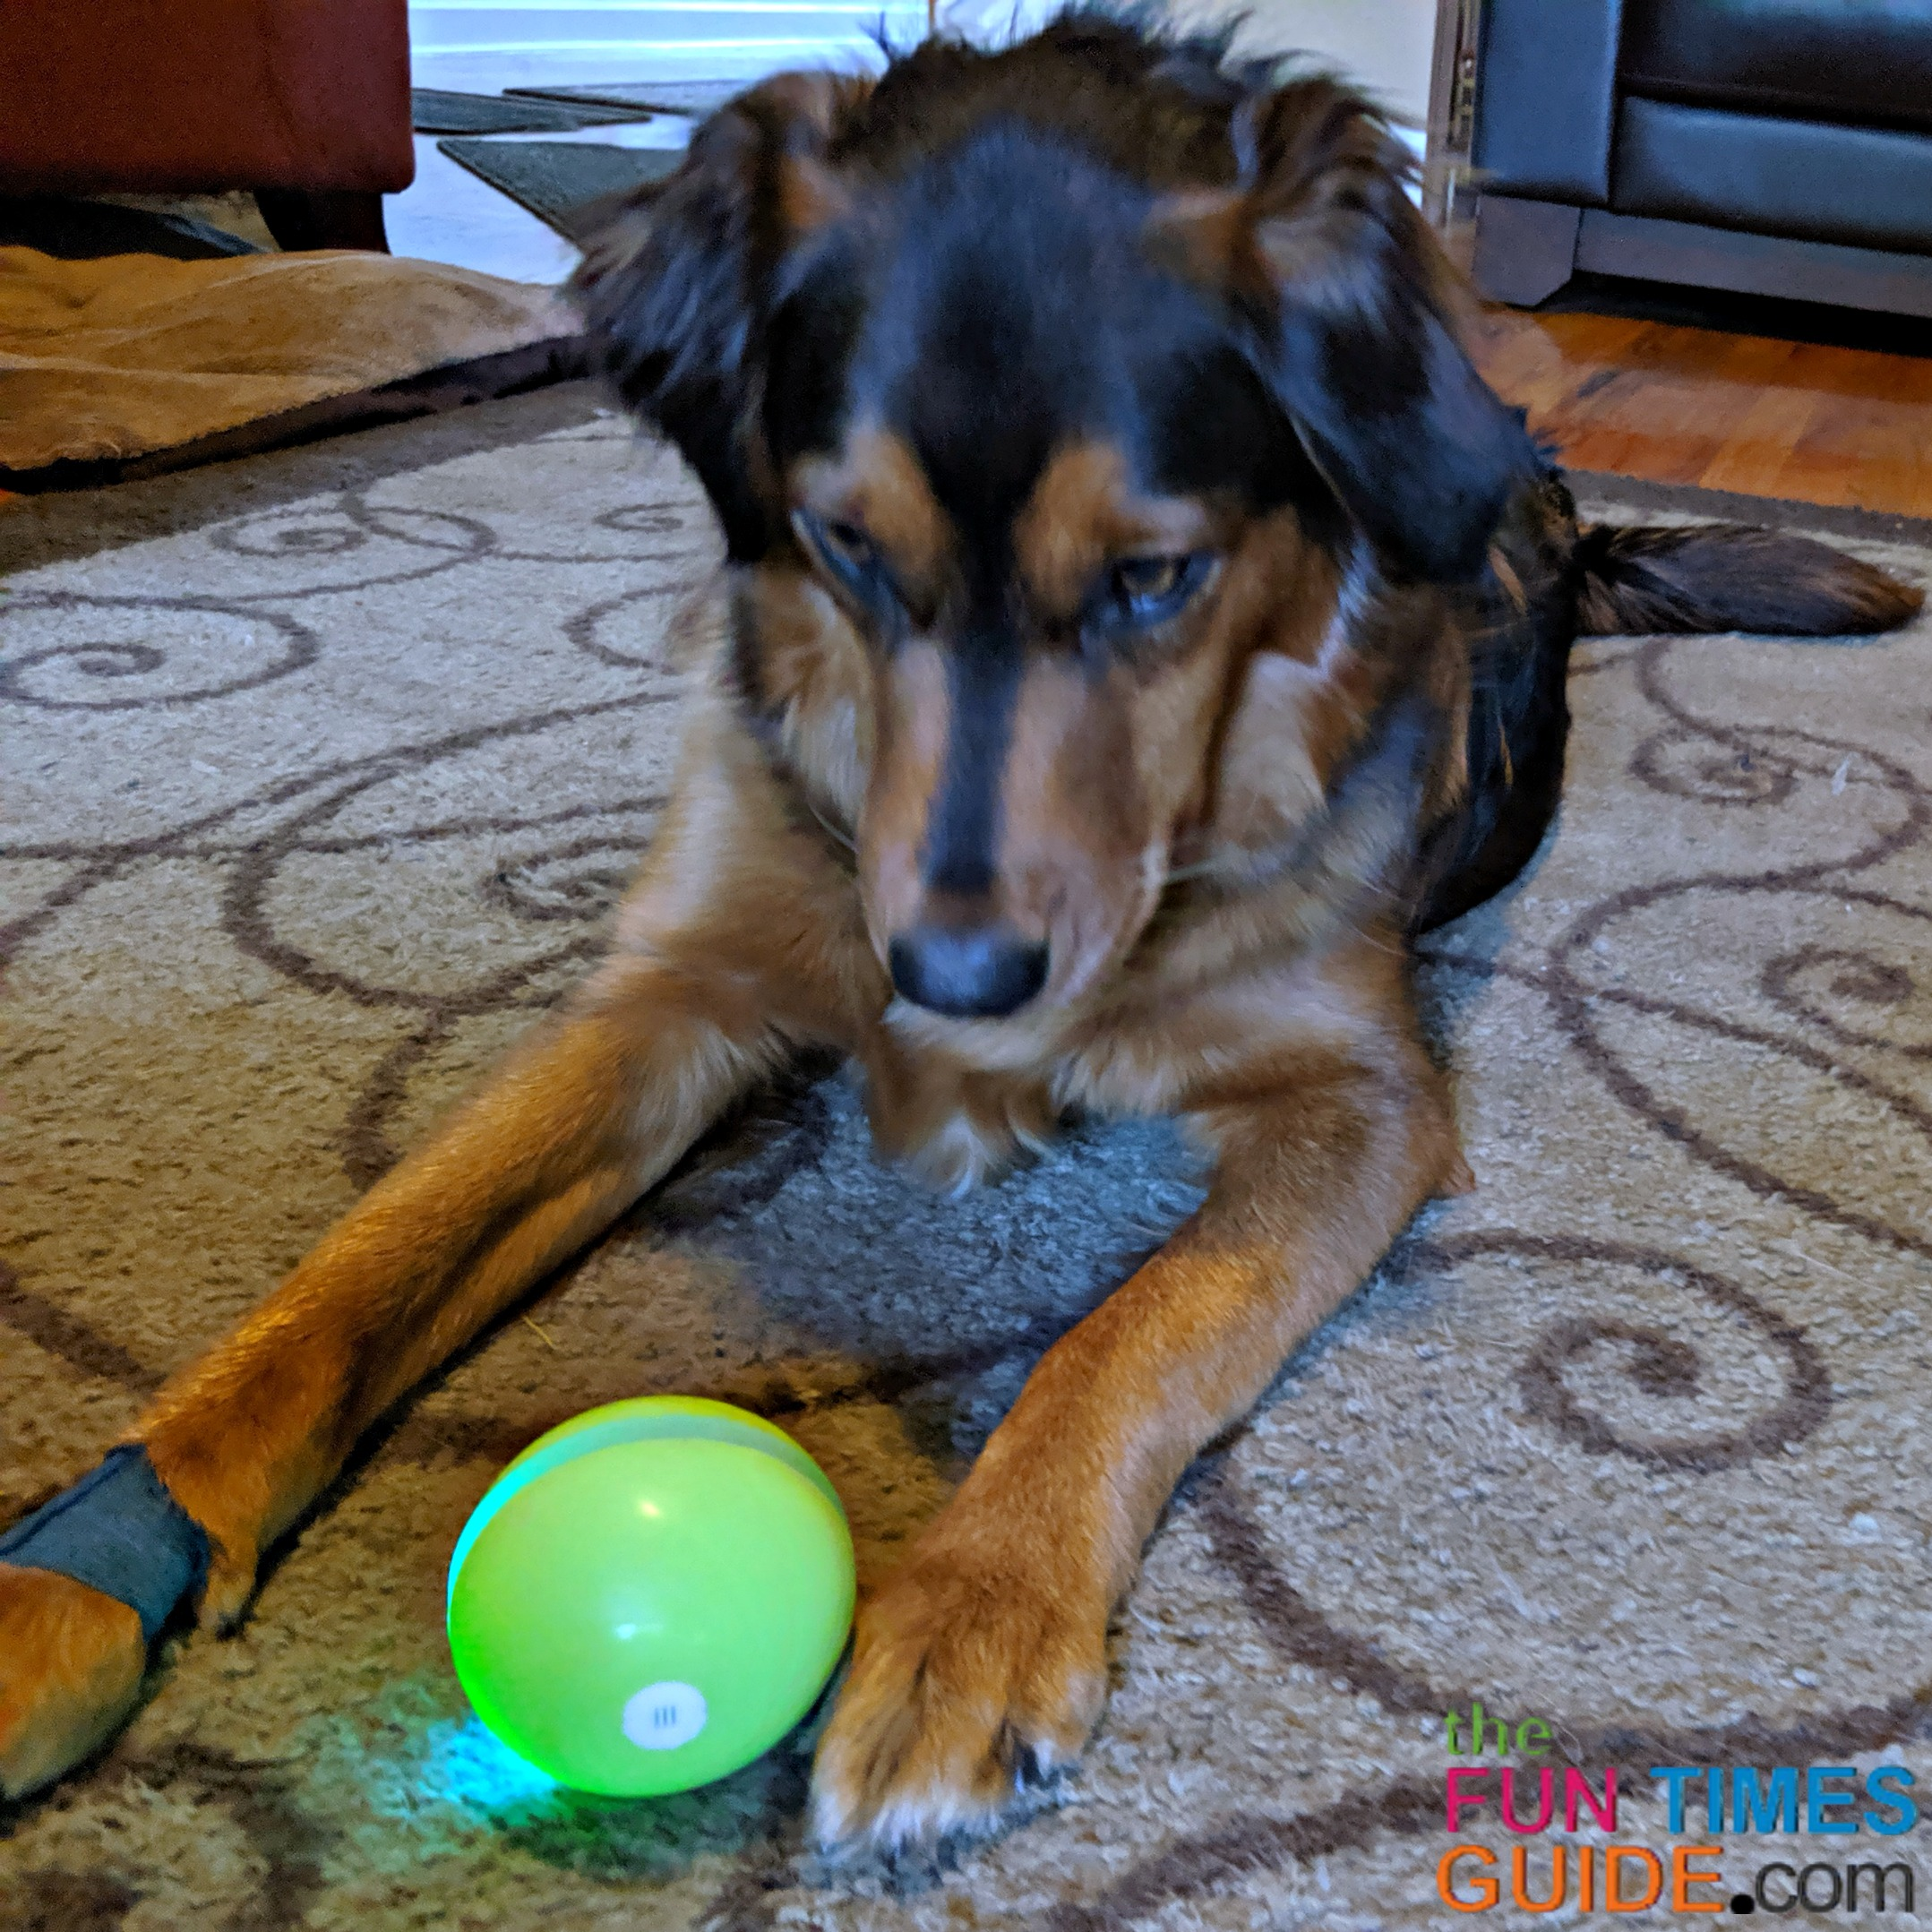 My dog Harley enjoys playing with the Wicked Ball the most.